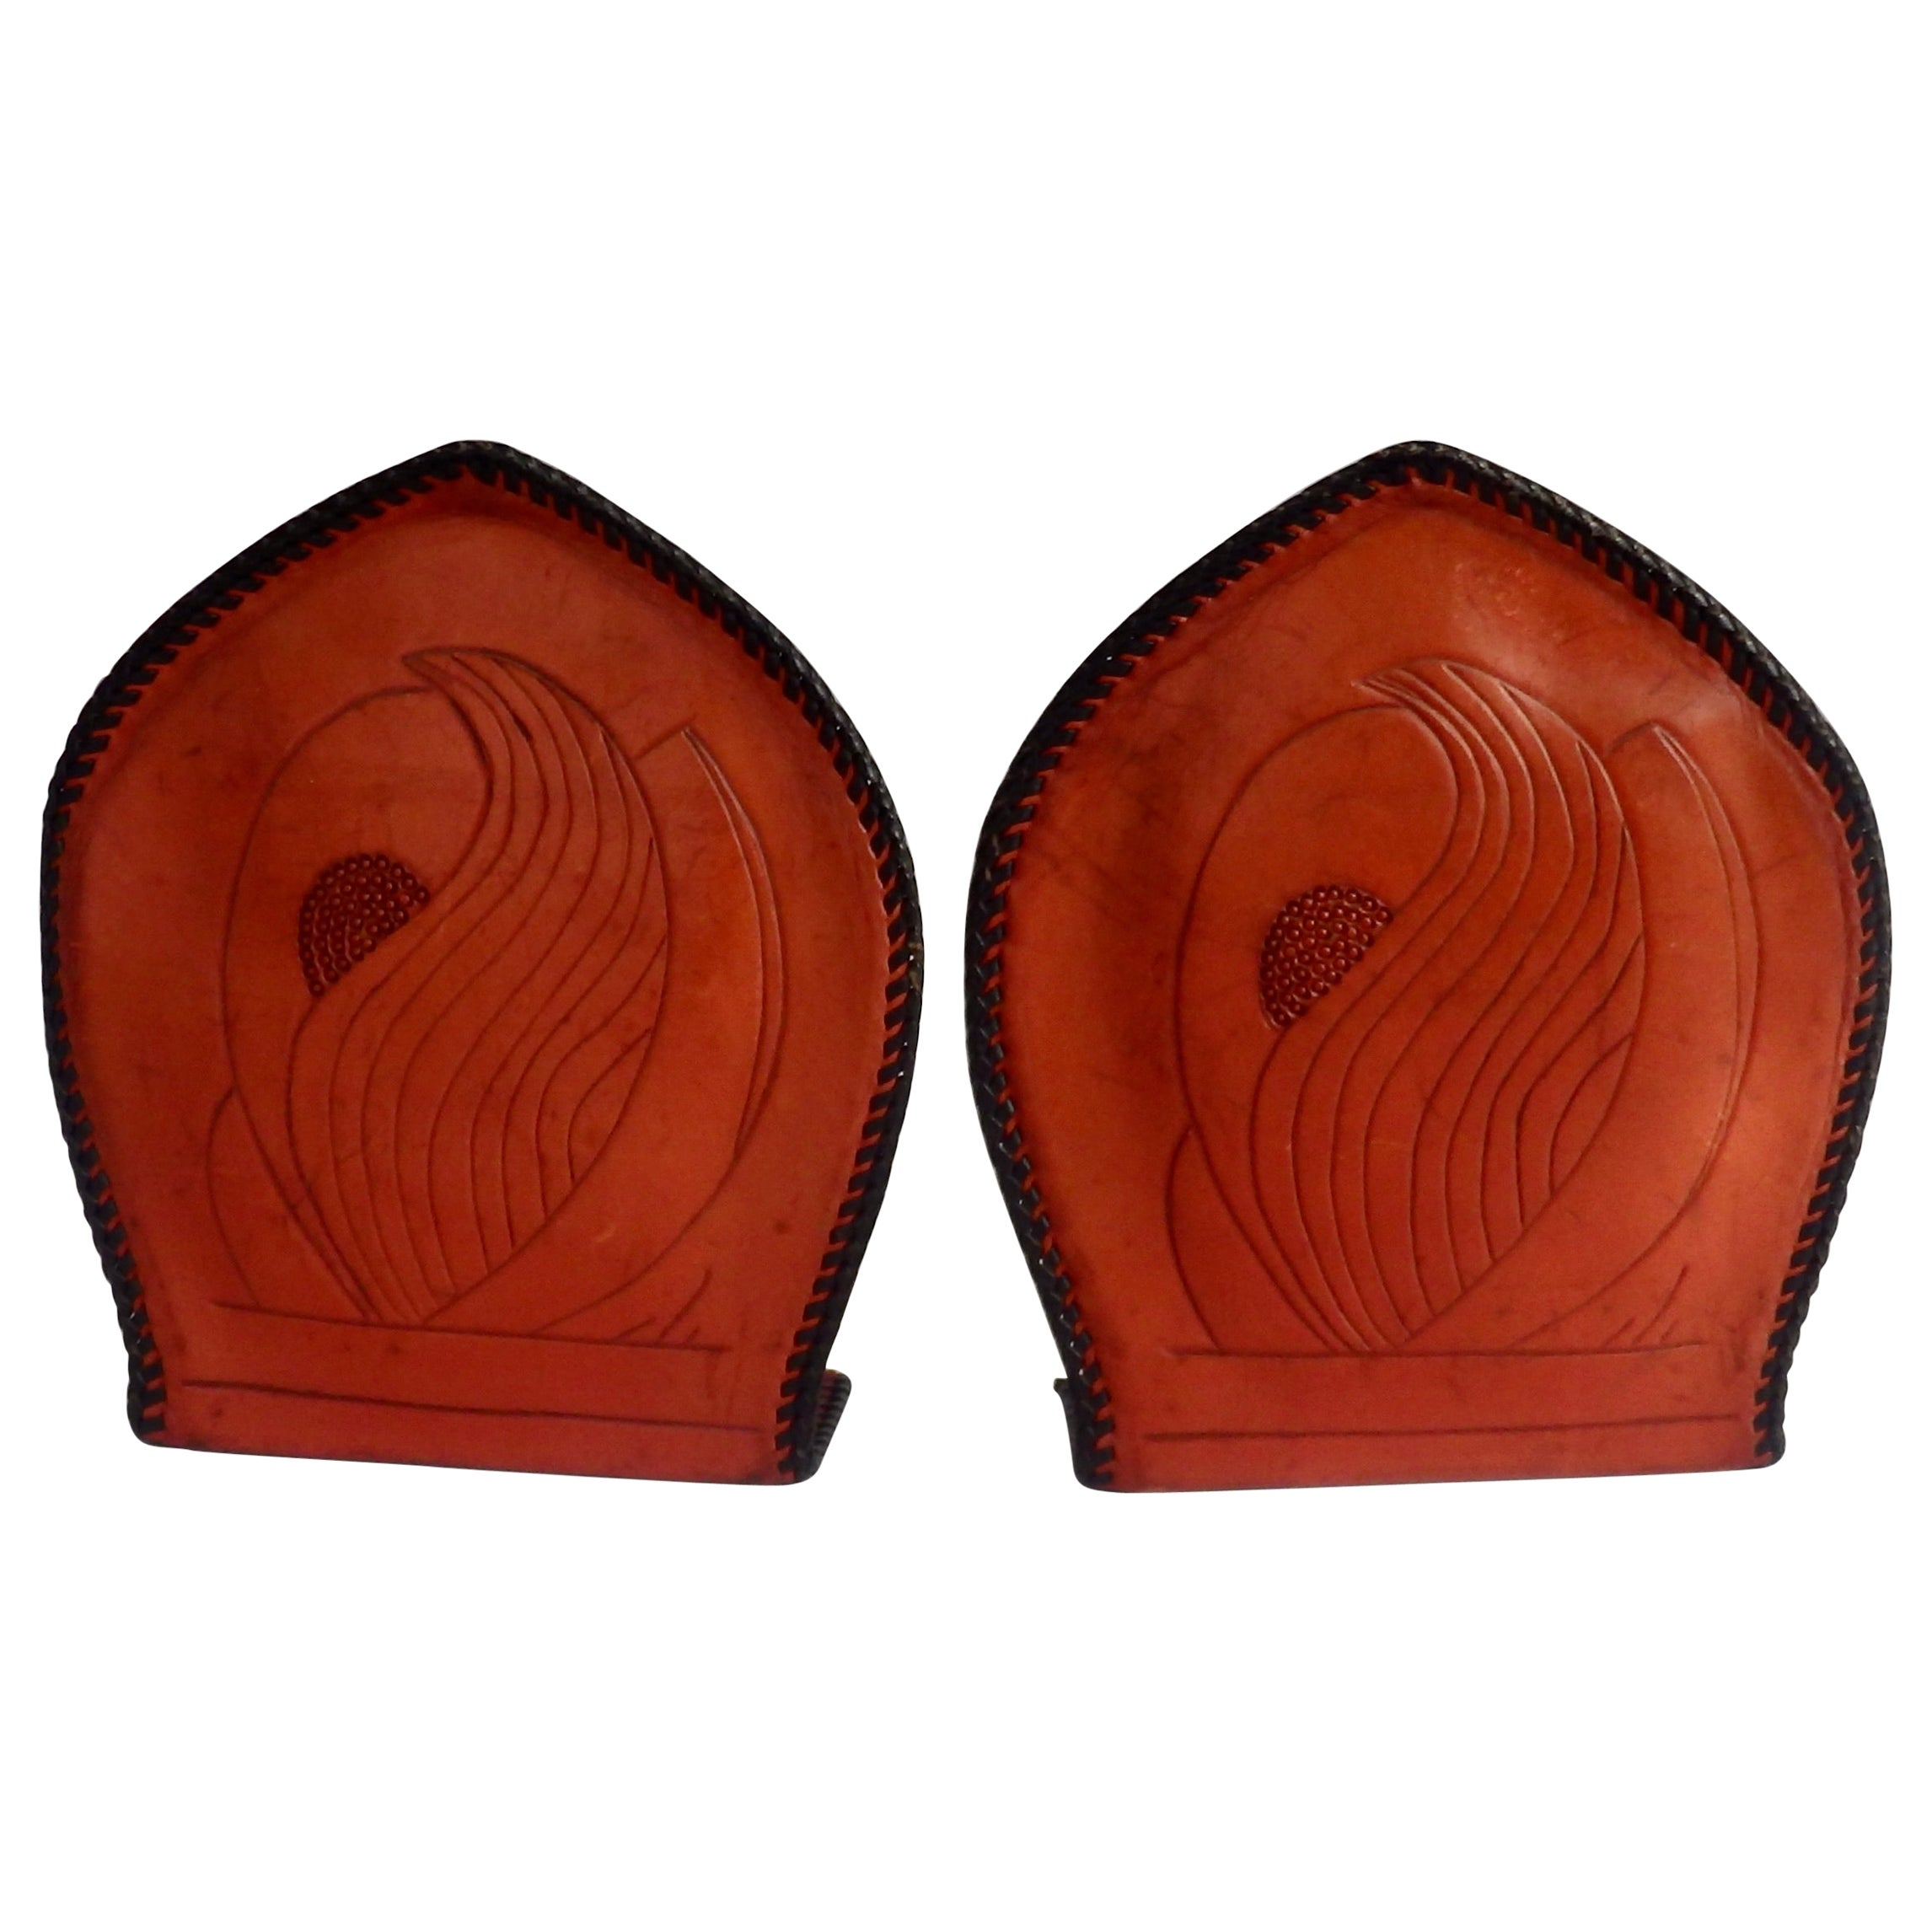 Pair of Hand Tooled Leather Book Ends with Laced Edges